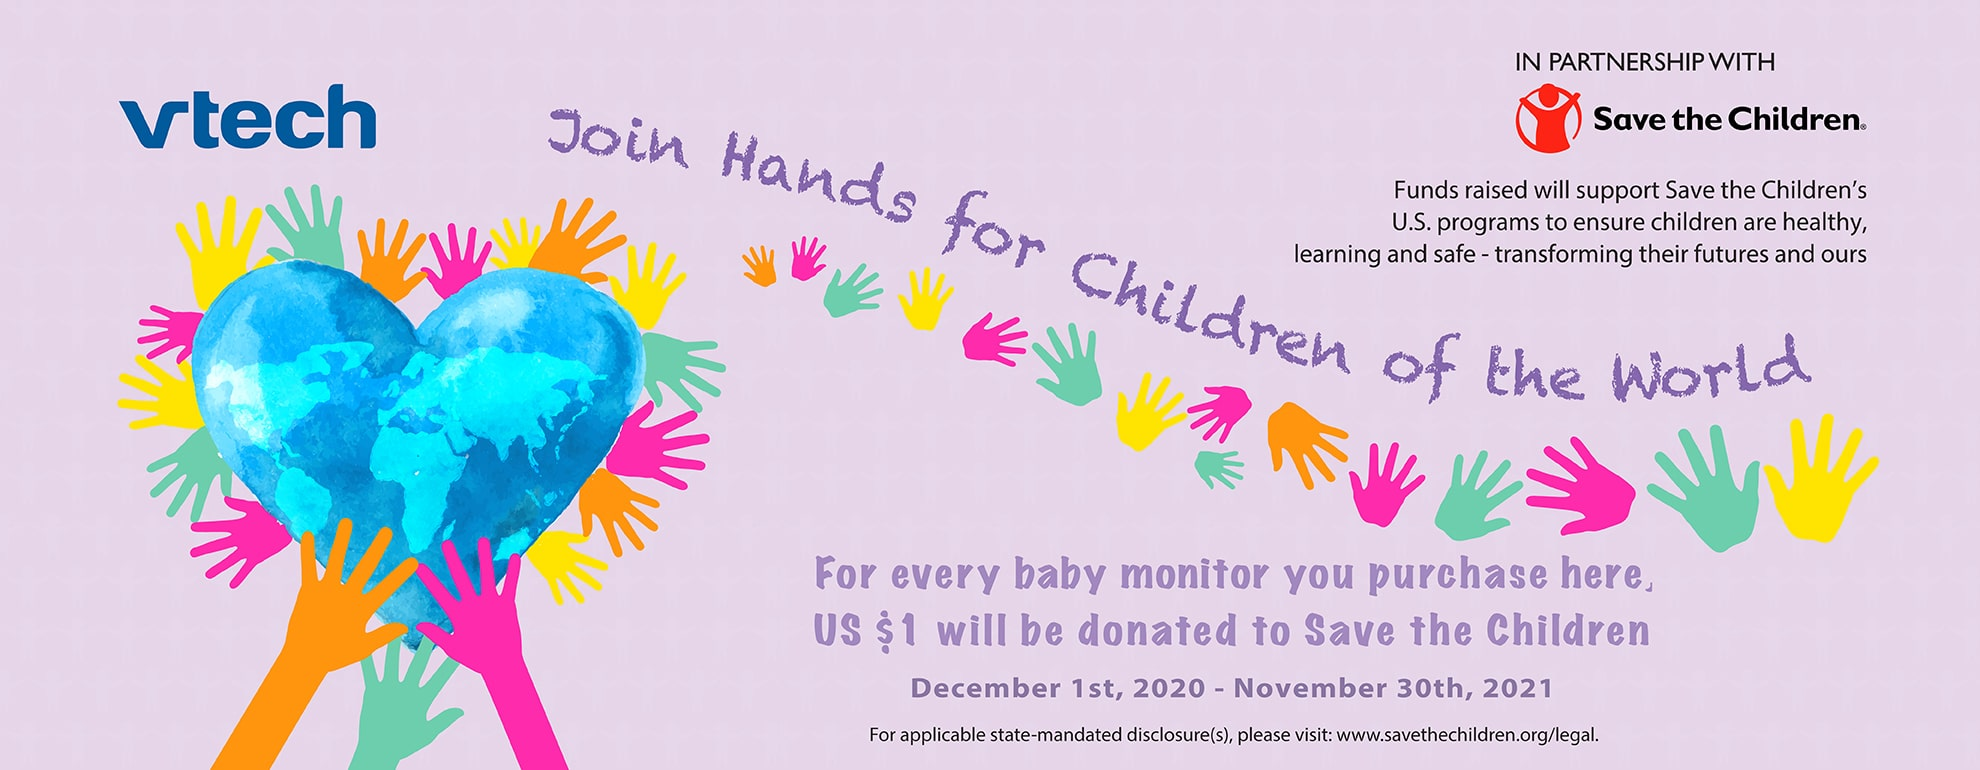 Join Hands for Children of the World - For every baby monitor you purchase, $1 USD will be donated to Save the Children